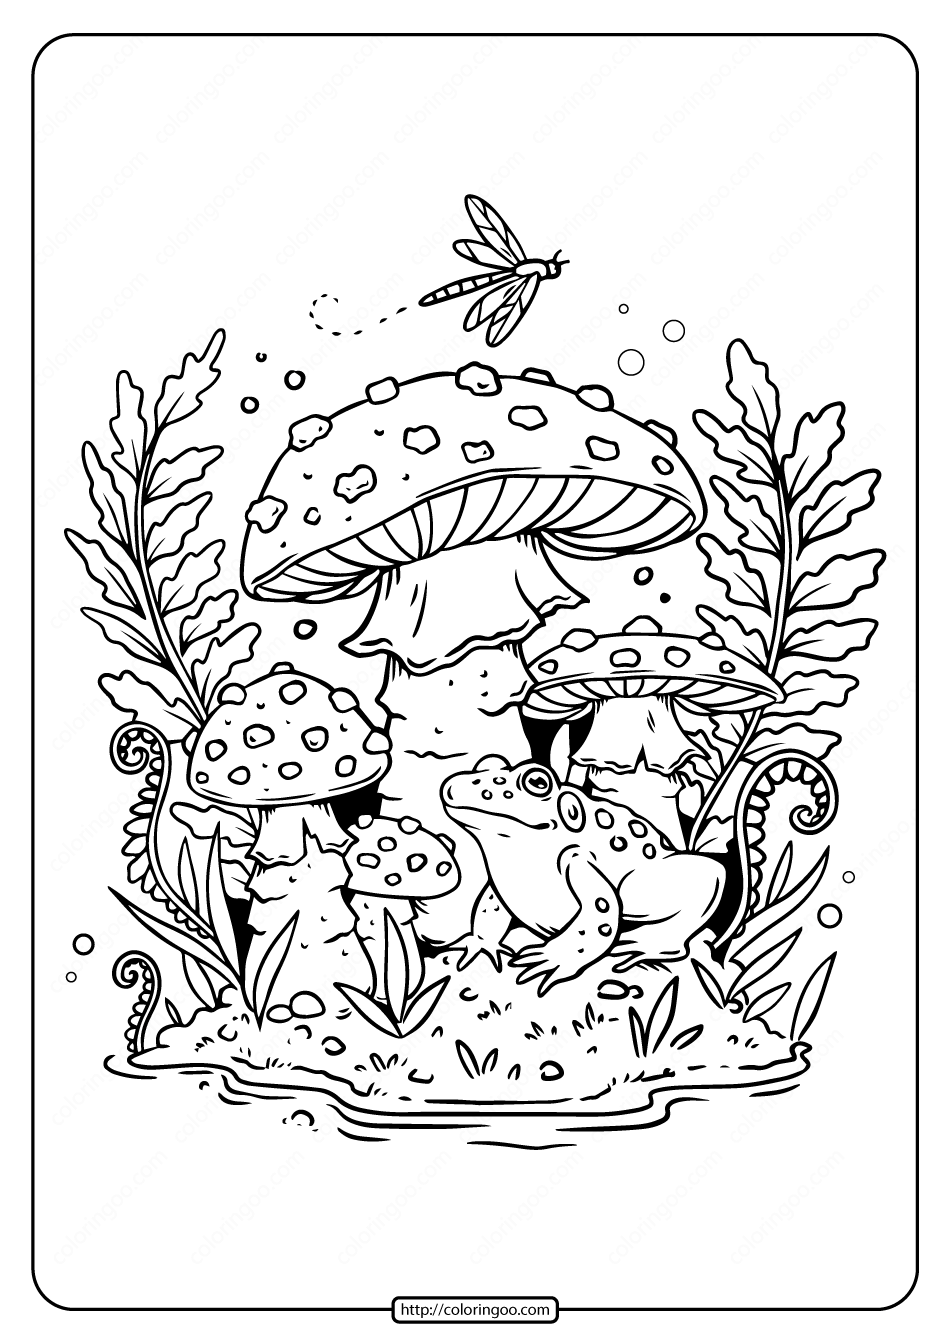 Printable Frog and Mushroom Coloring Pages